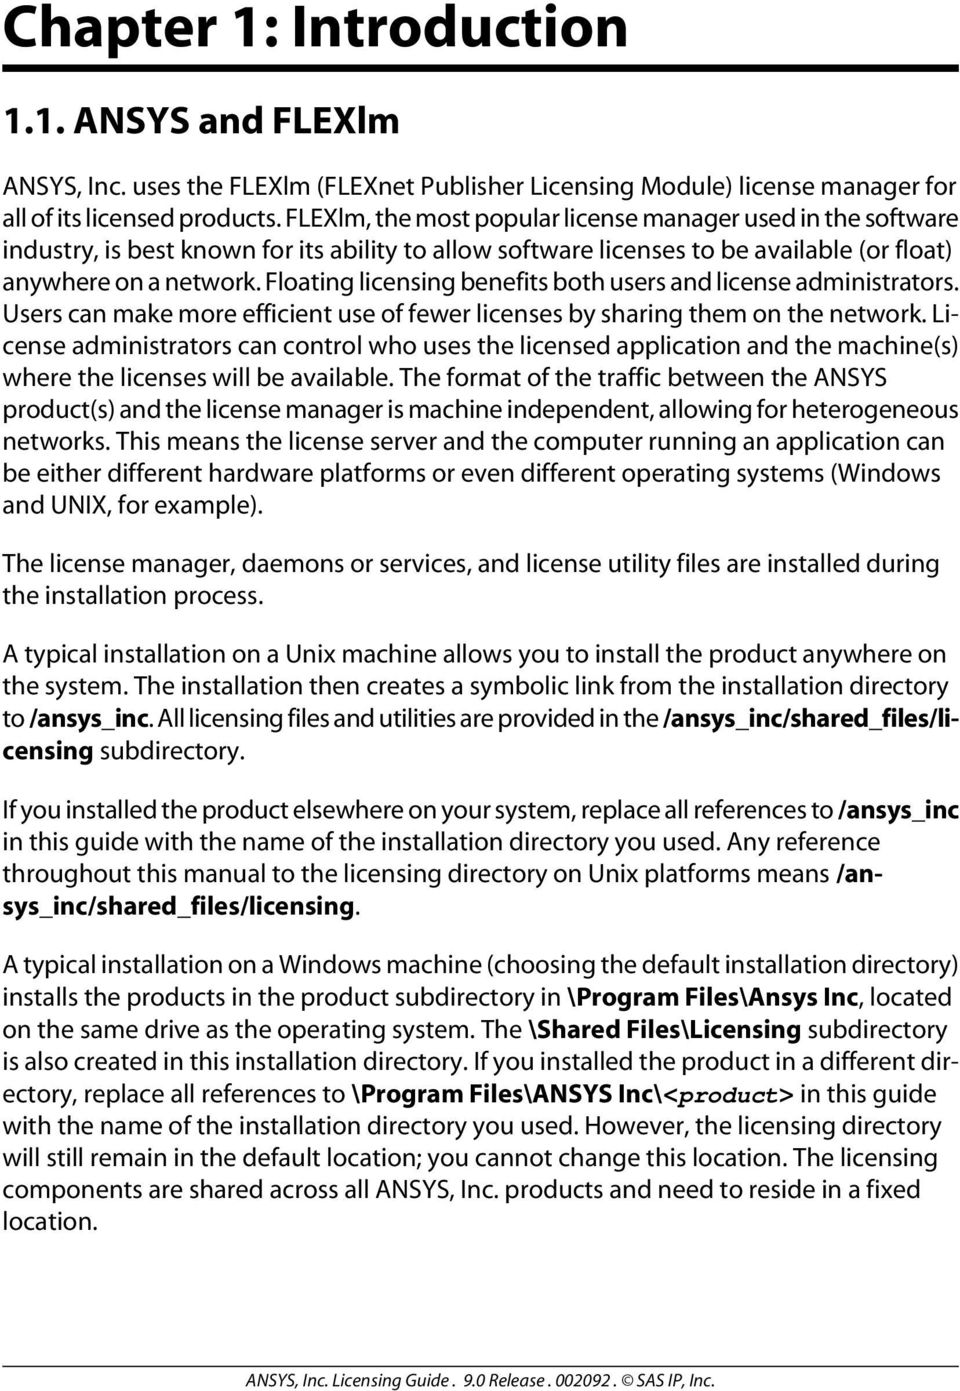 ANSYS, Inc  Licensing Guide - PDF